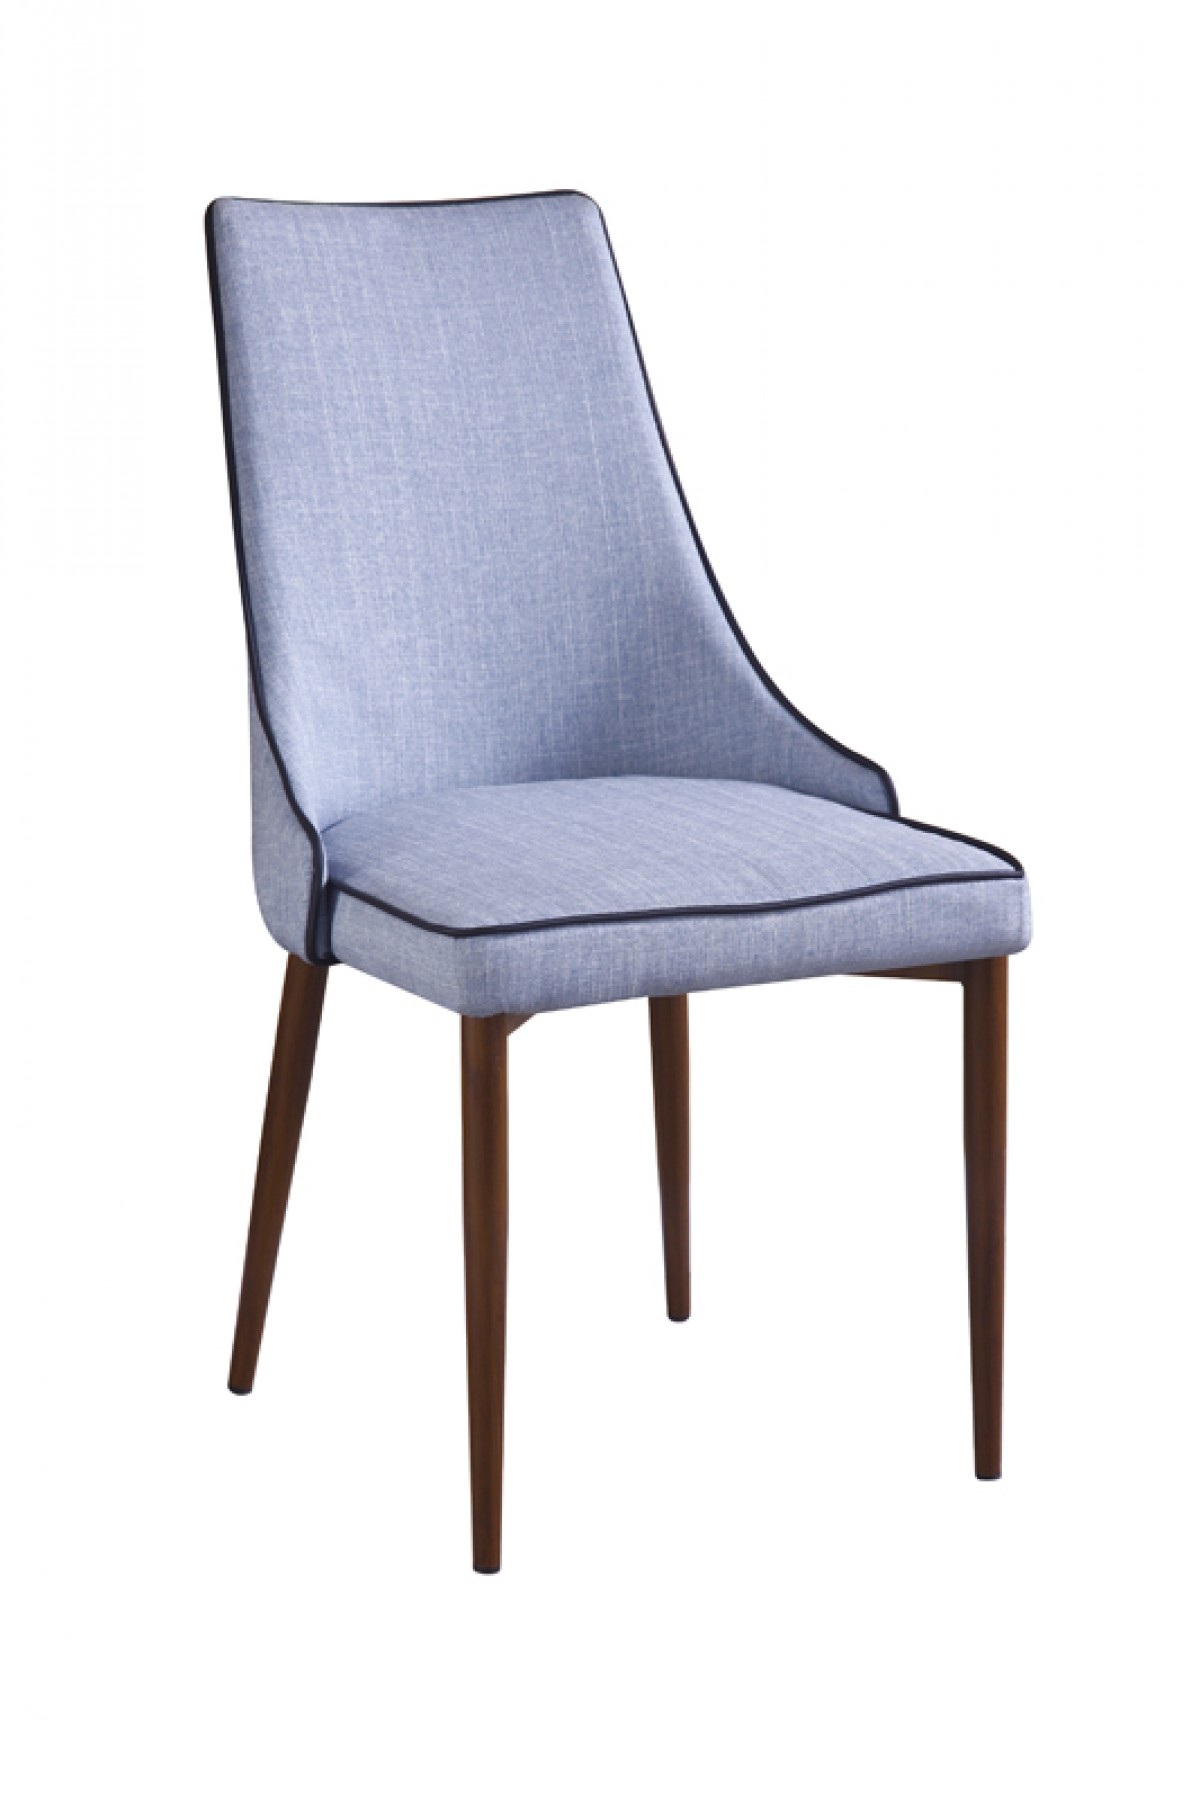 Modrest Lenora Modern Blue Dining Chair : ldc274 272976lenorablue11 30 2016hr03 from www.vigfurniture.com size 1200 x 1801 jpeg 139kB